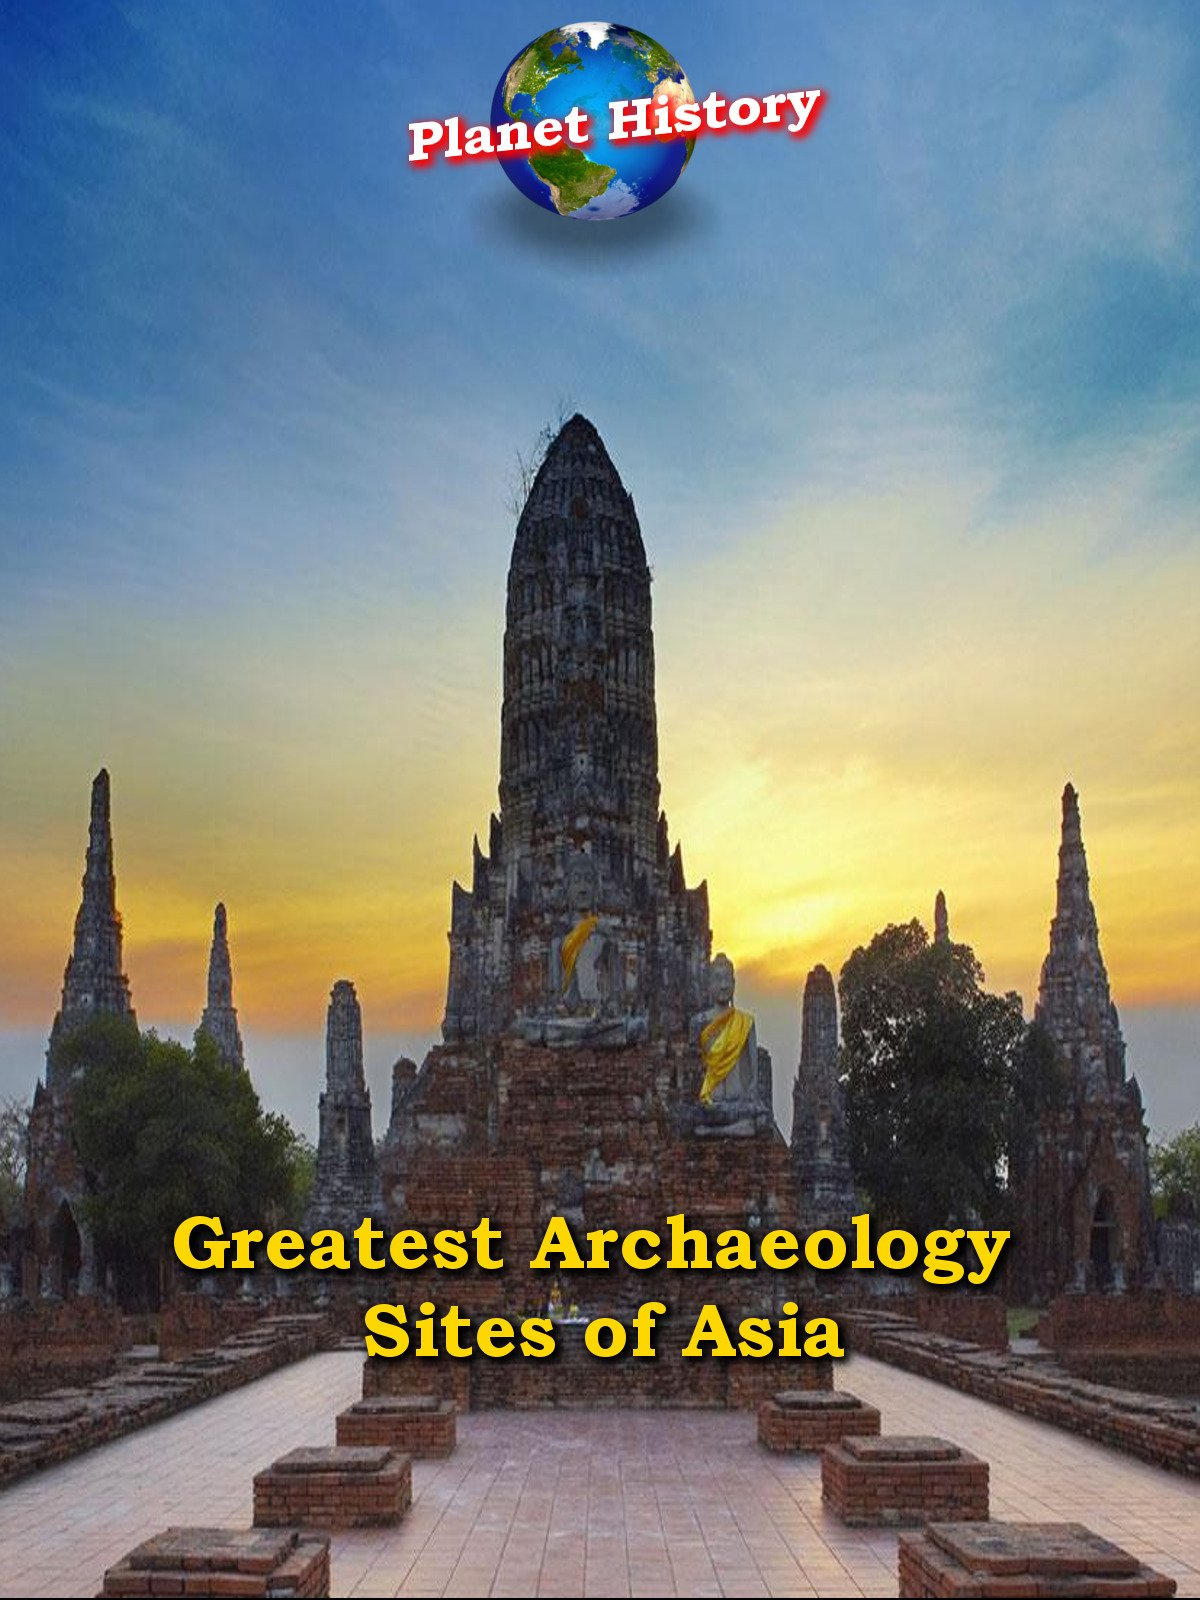 Greatest Archaeology Sites of Asia - Planet History on Amazon Prime Video UK